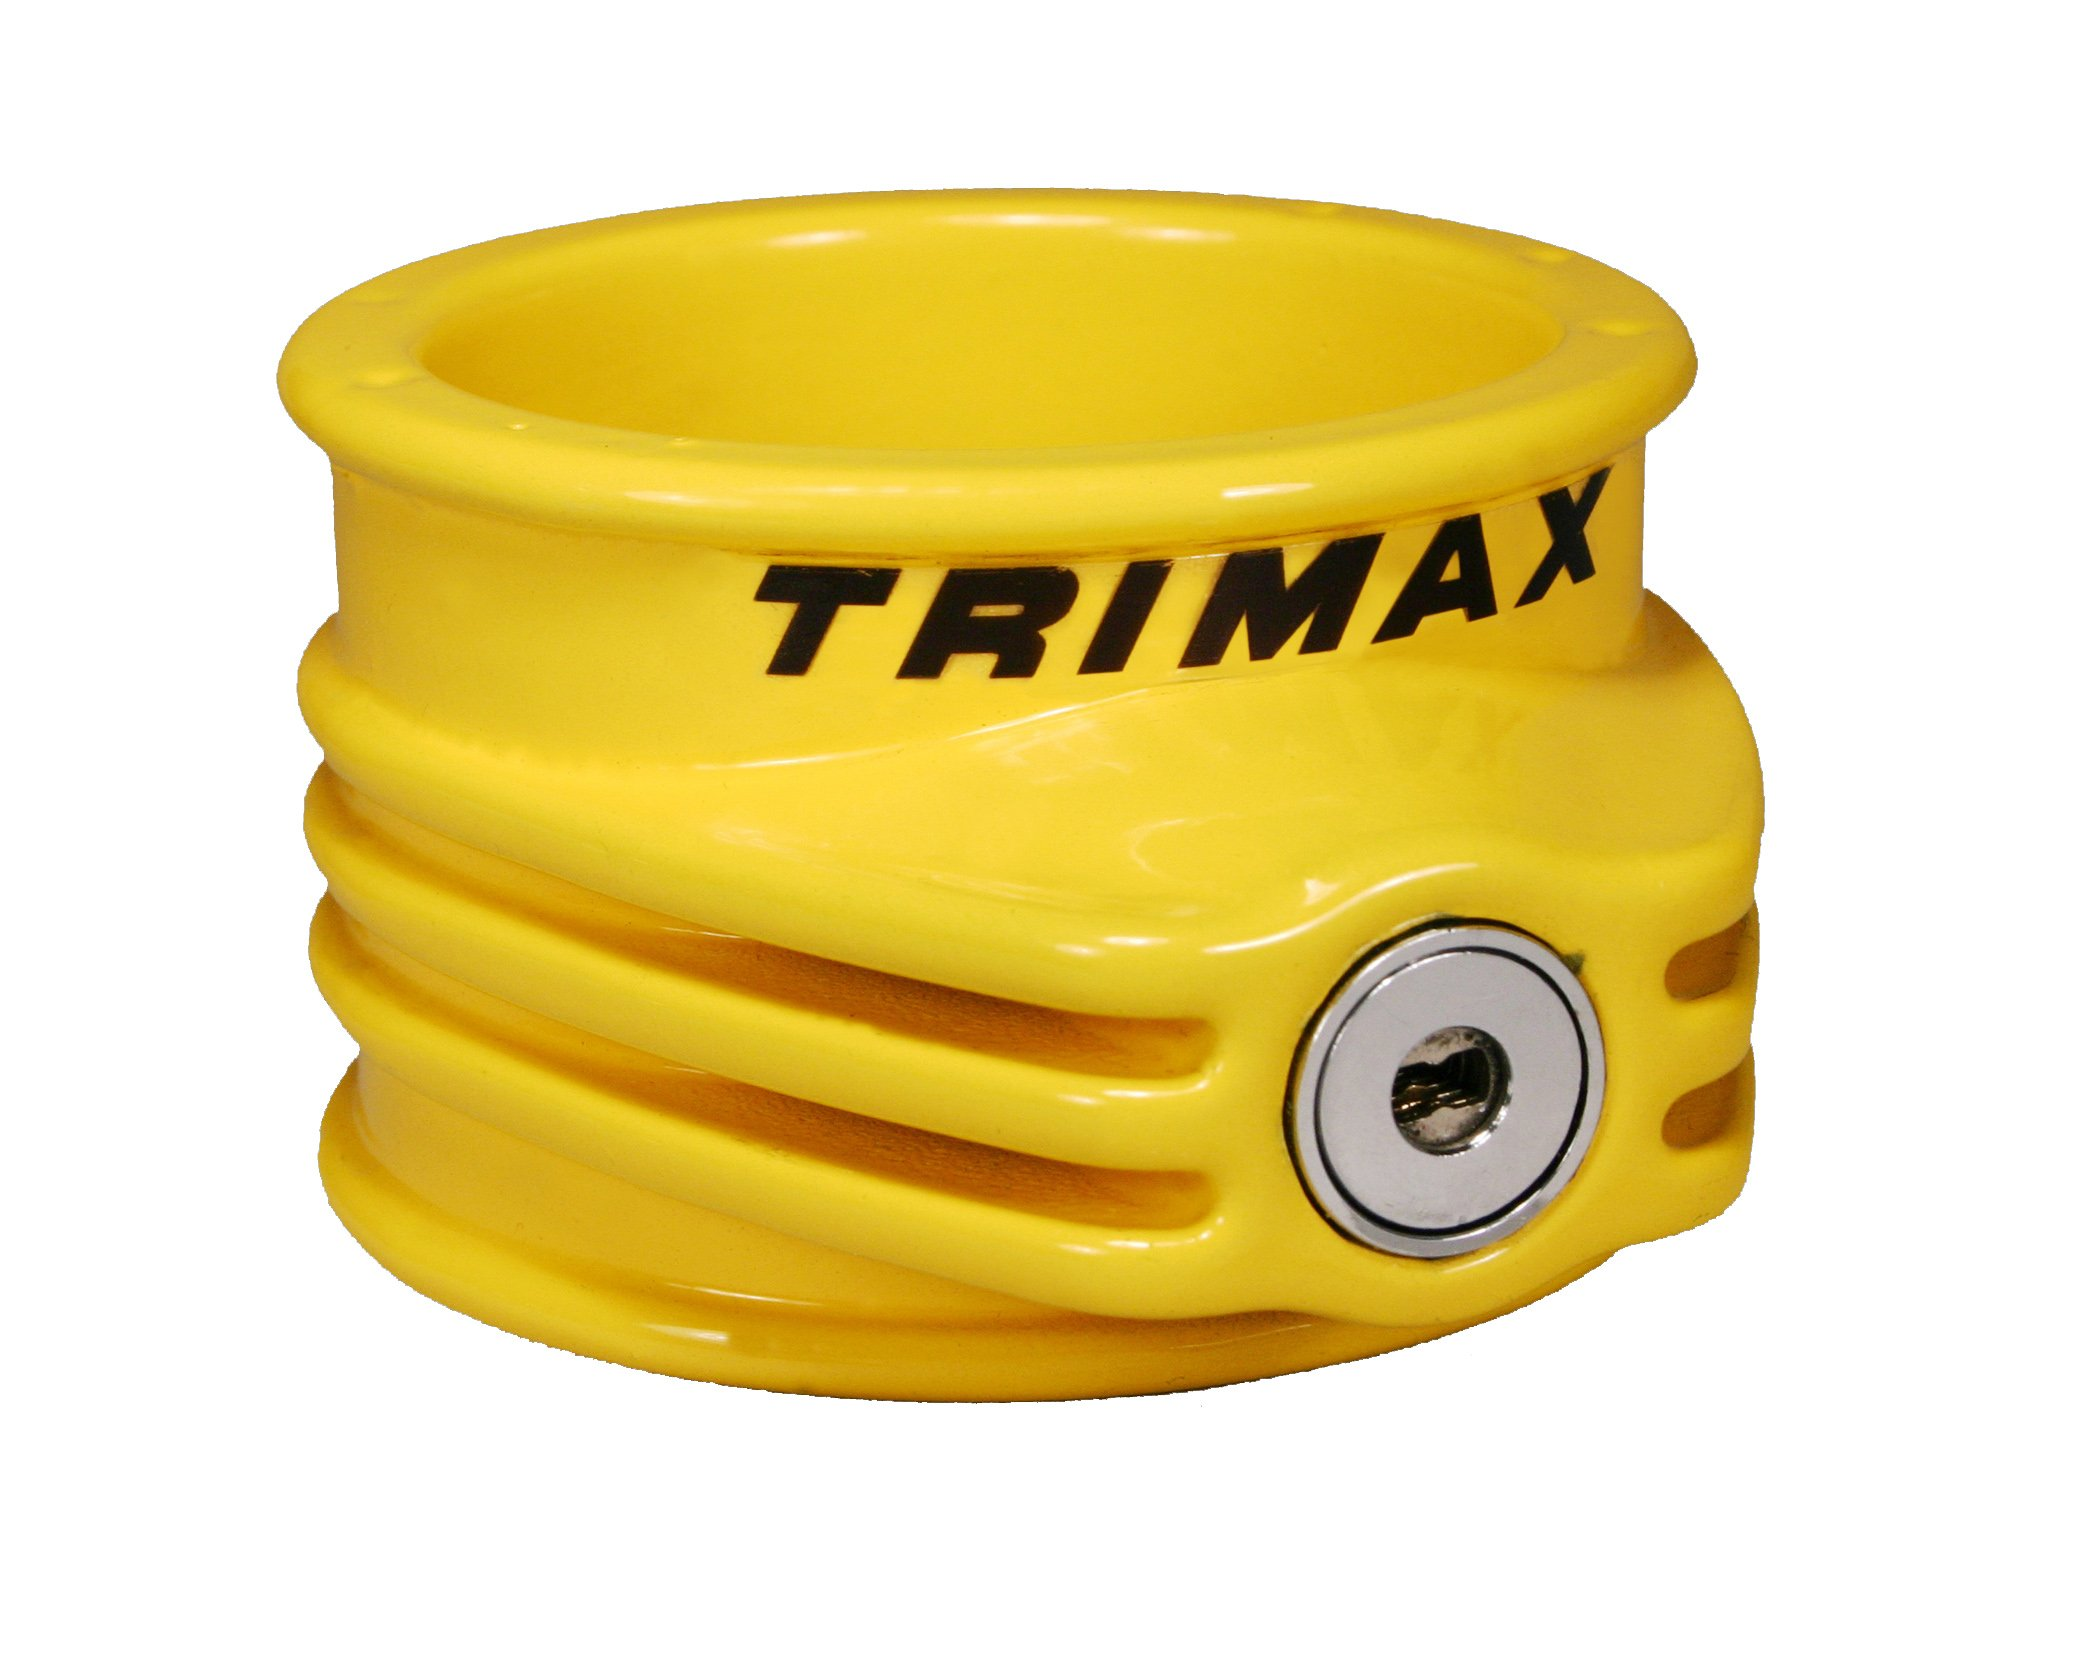 Trimax TFW55 Ultra Tough 5th Wheel Trailer Lock by Trimax